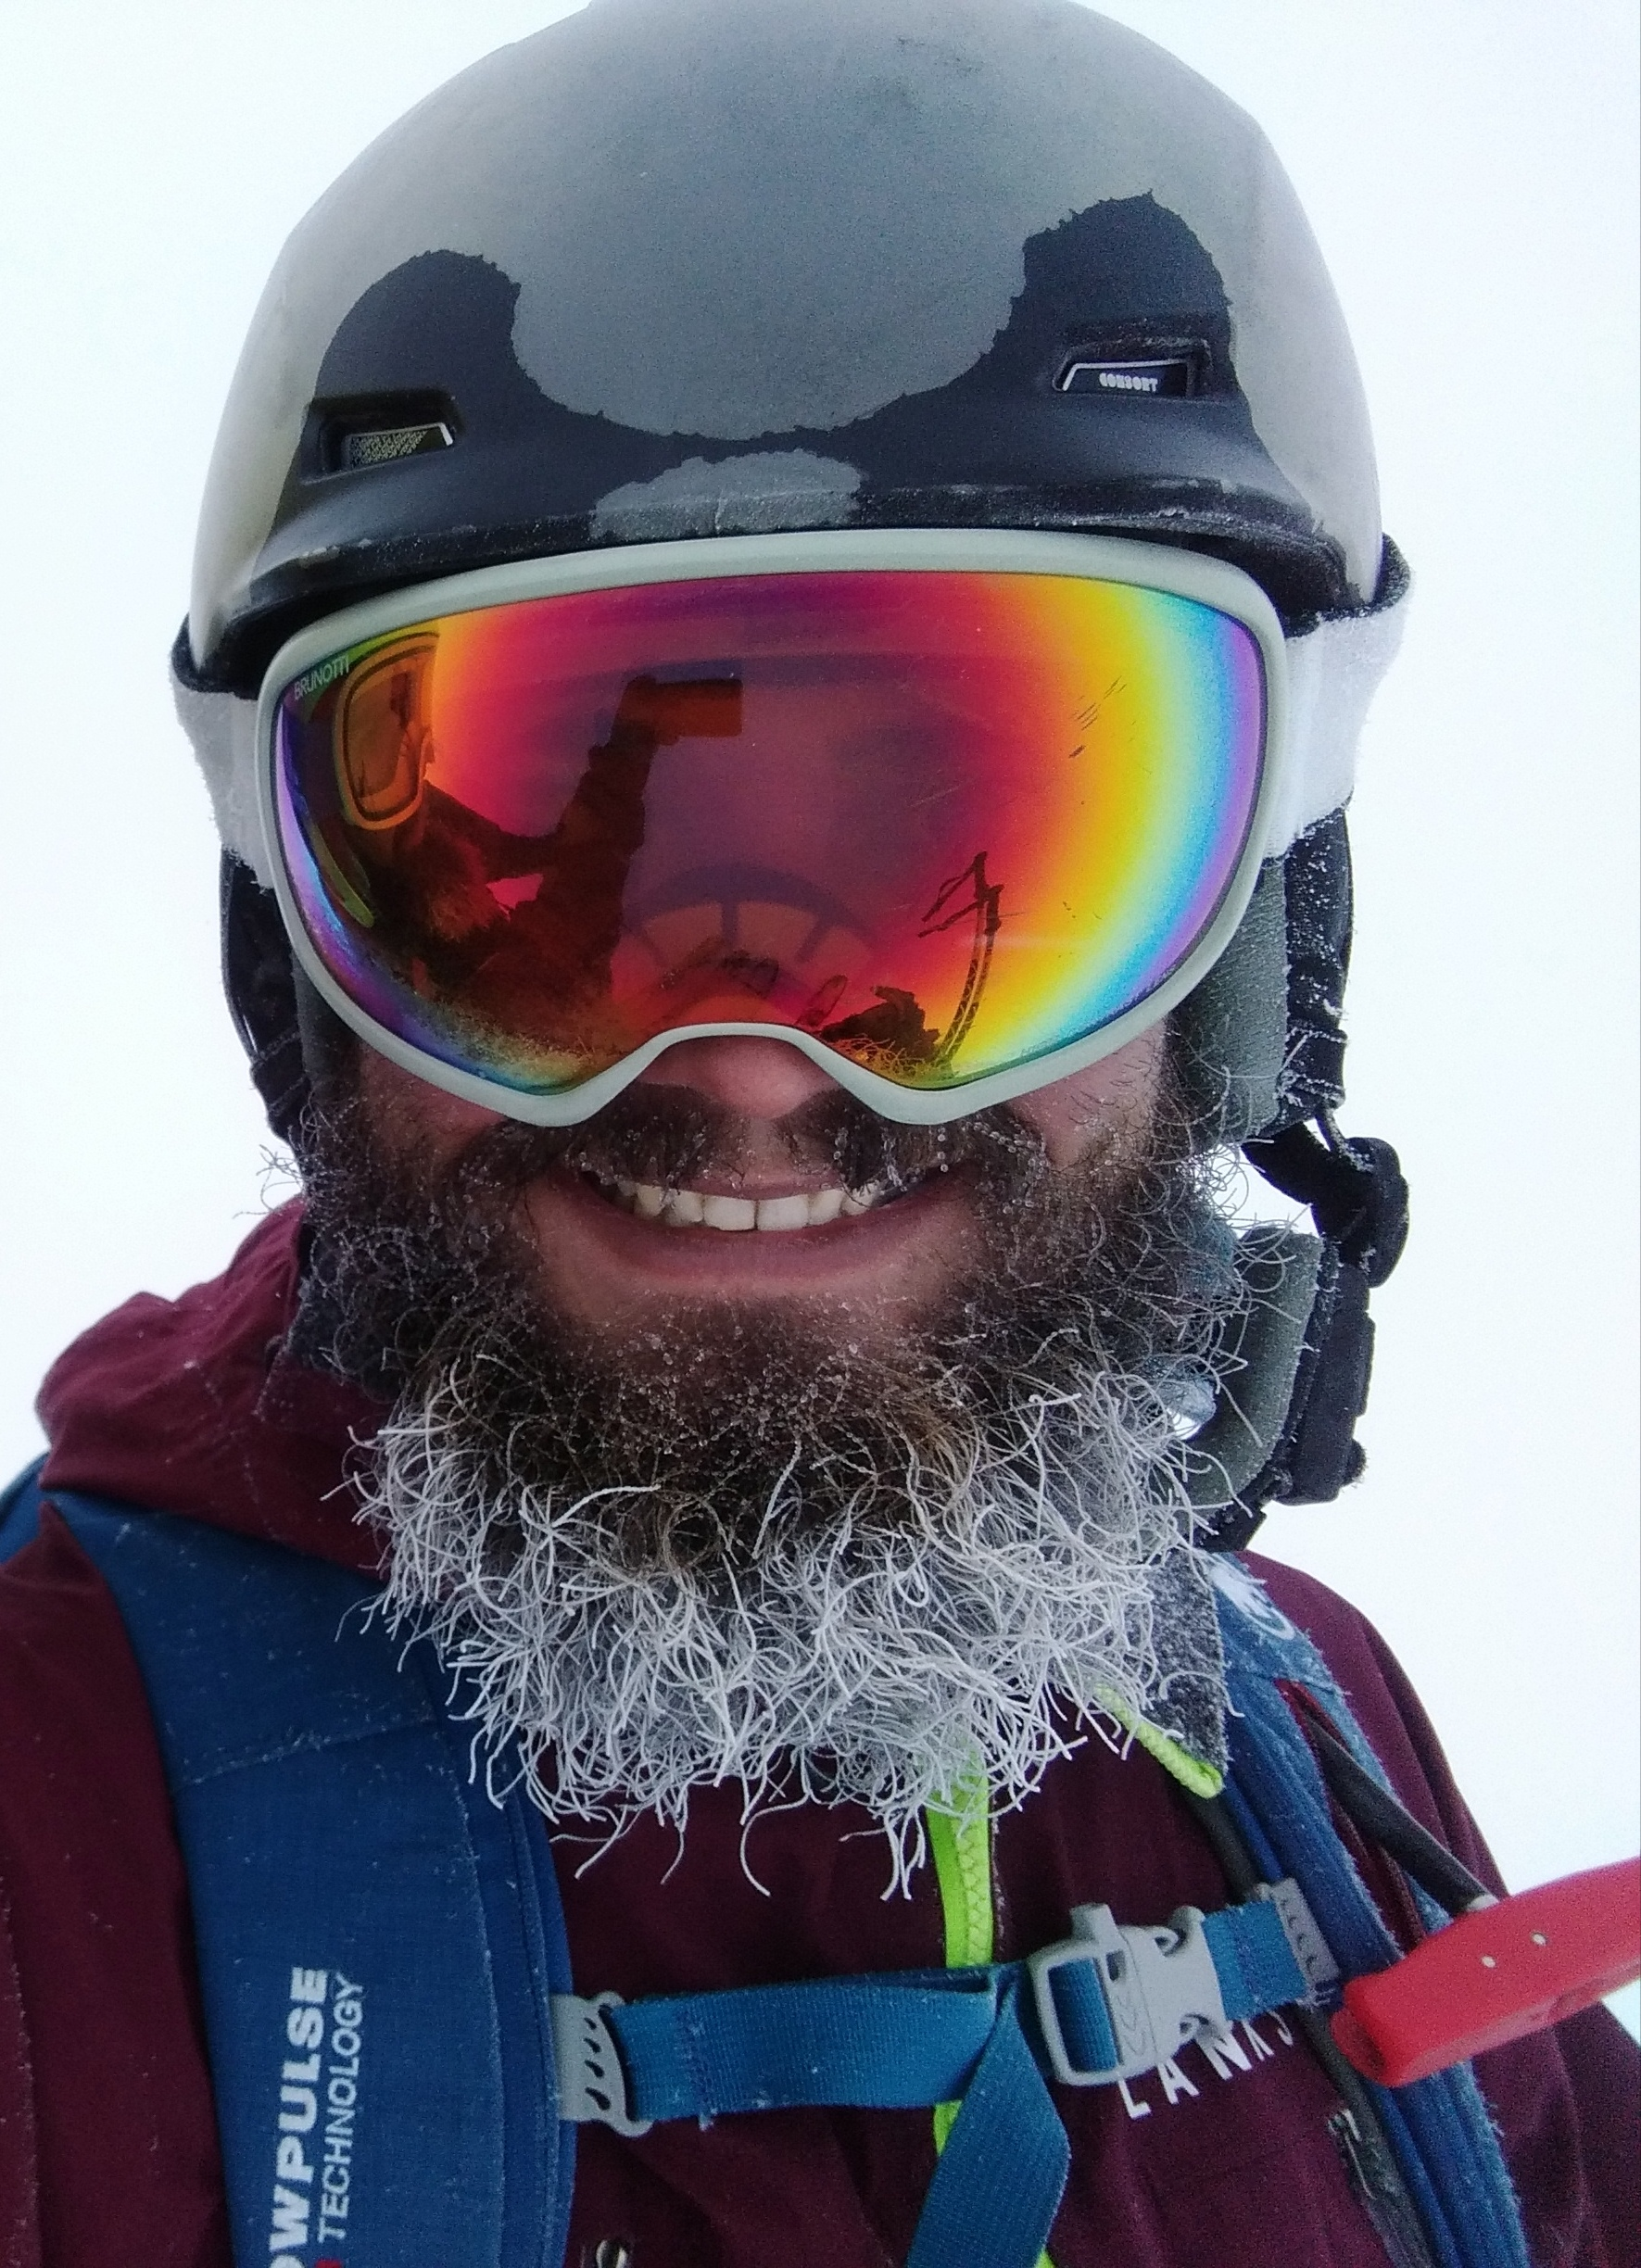 Nick, private ski instructor for Ben&Joe's in Klosters and Davos. Take a private ski lesson with him